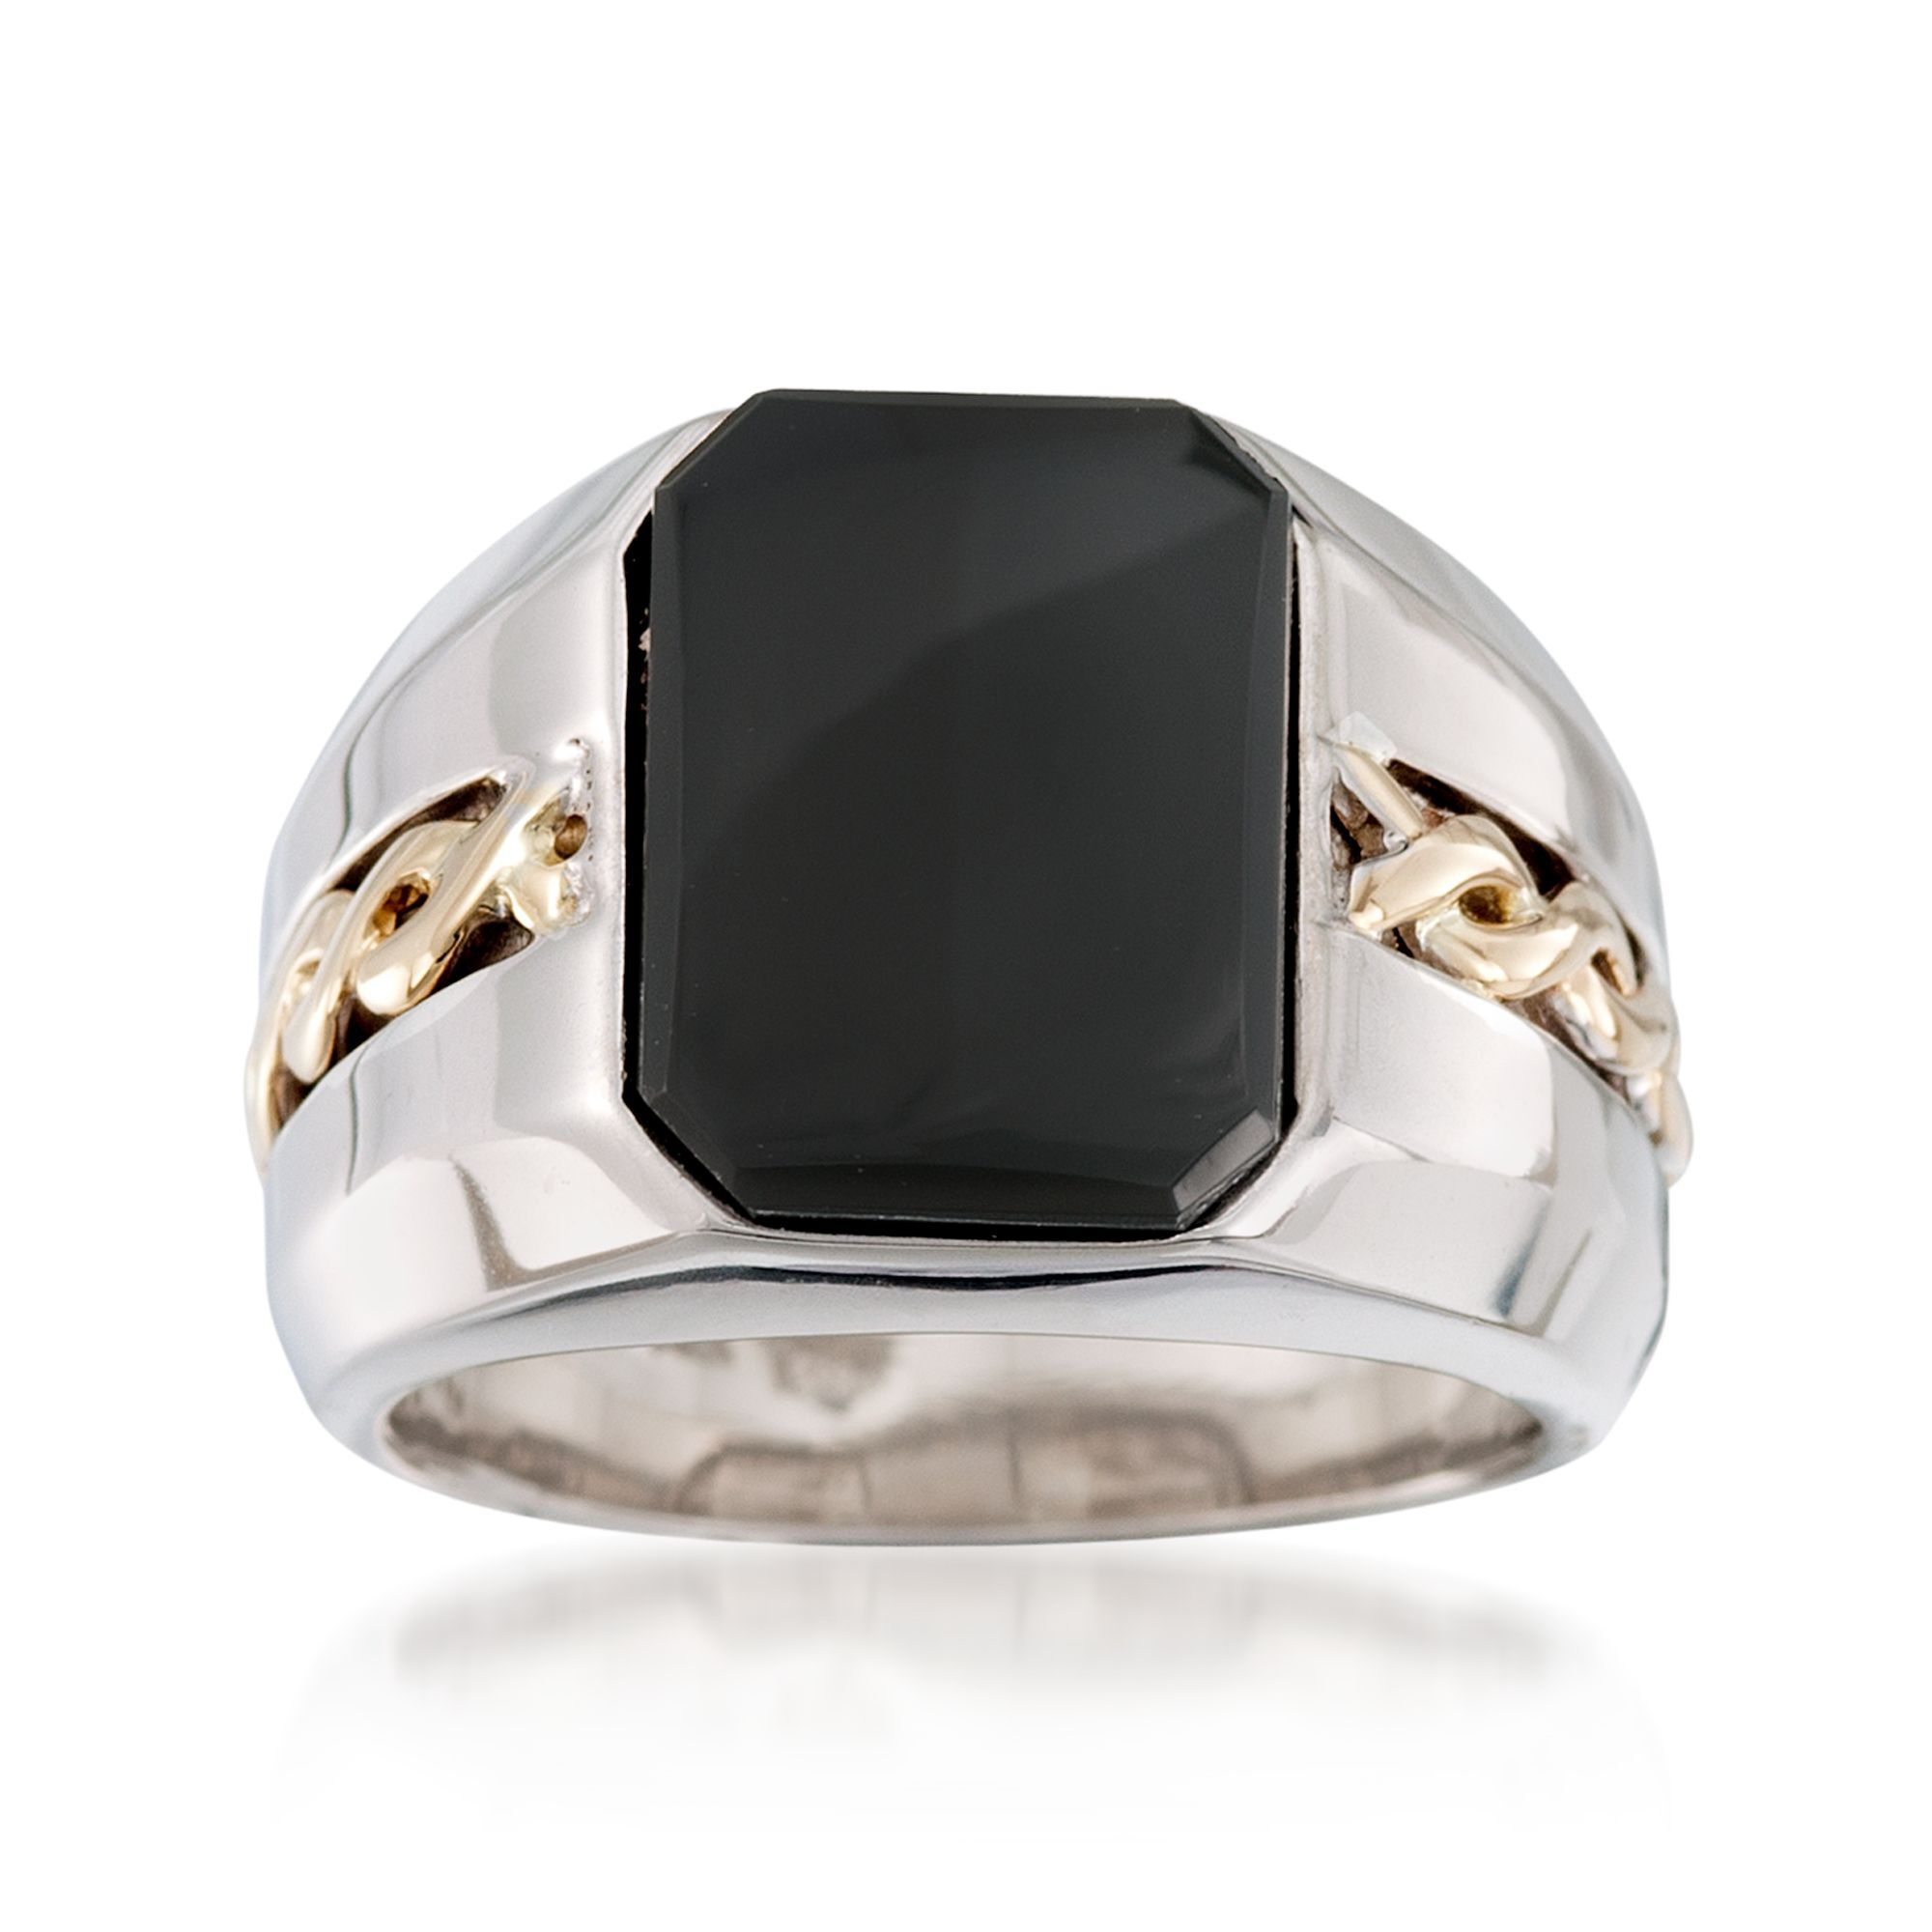 Pictures of black onyx rings